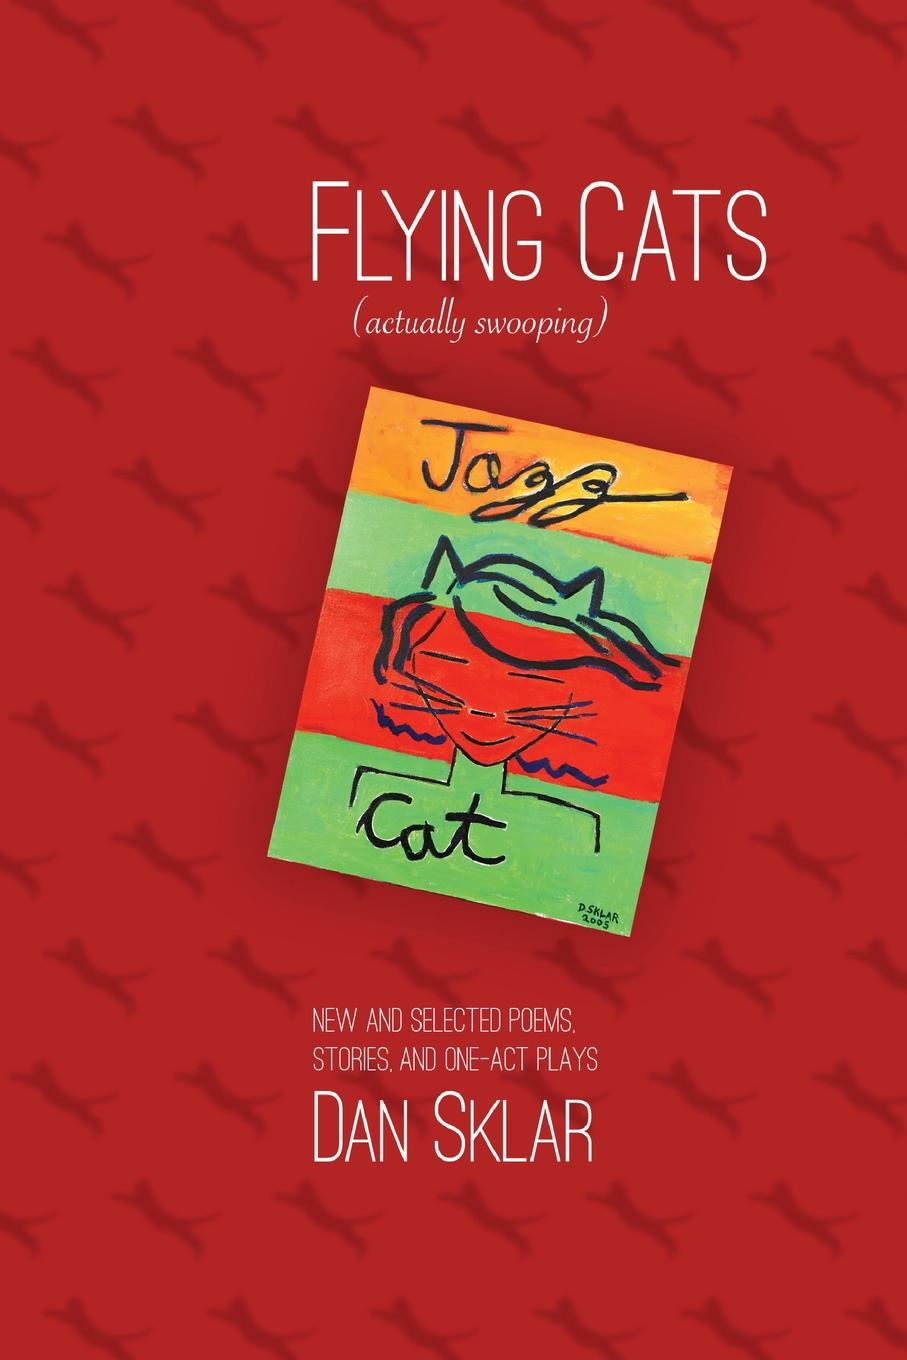 Flying Cats (Actually Swooping)